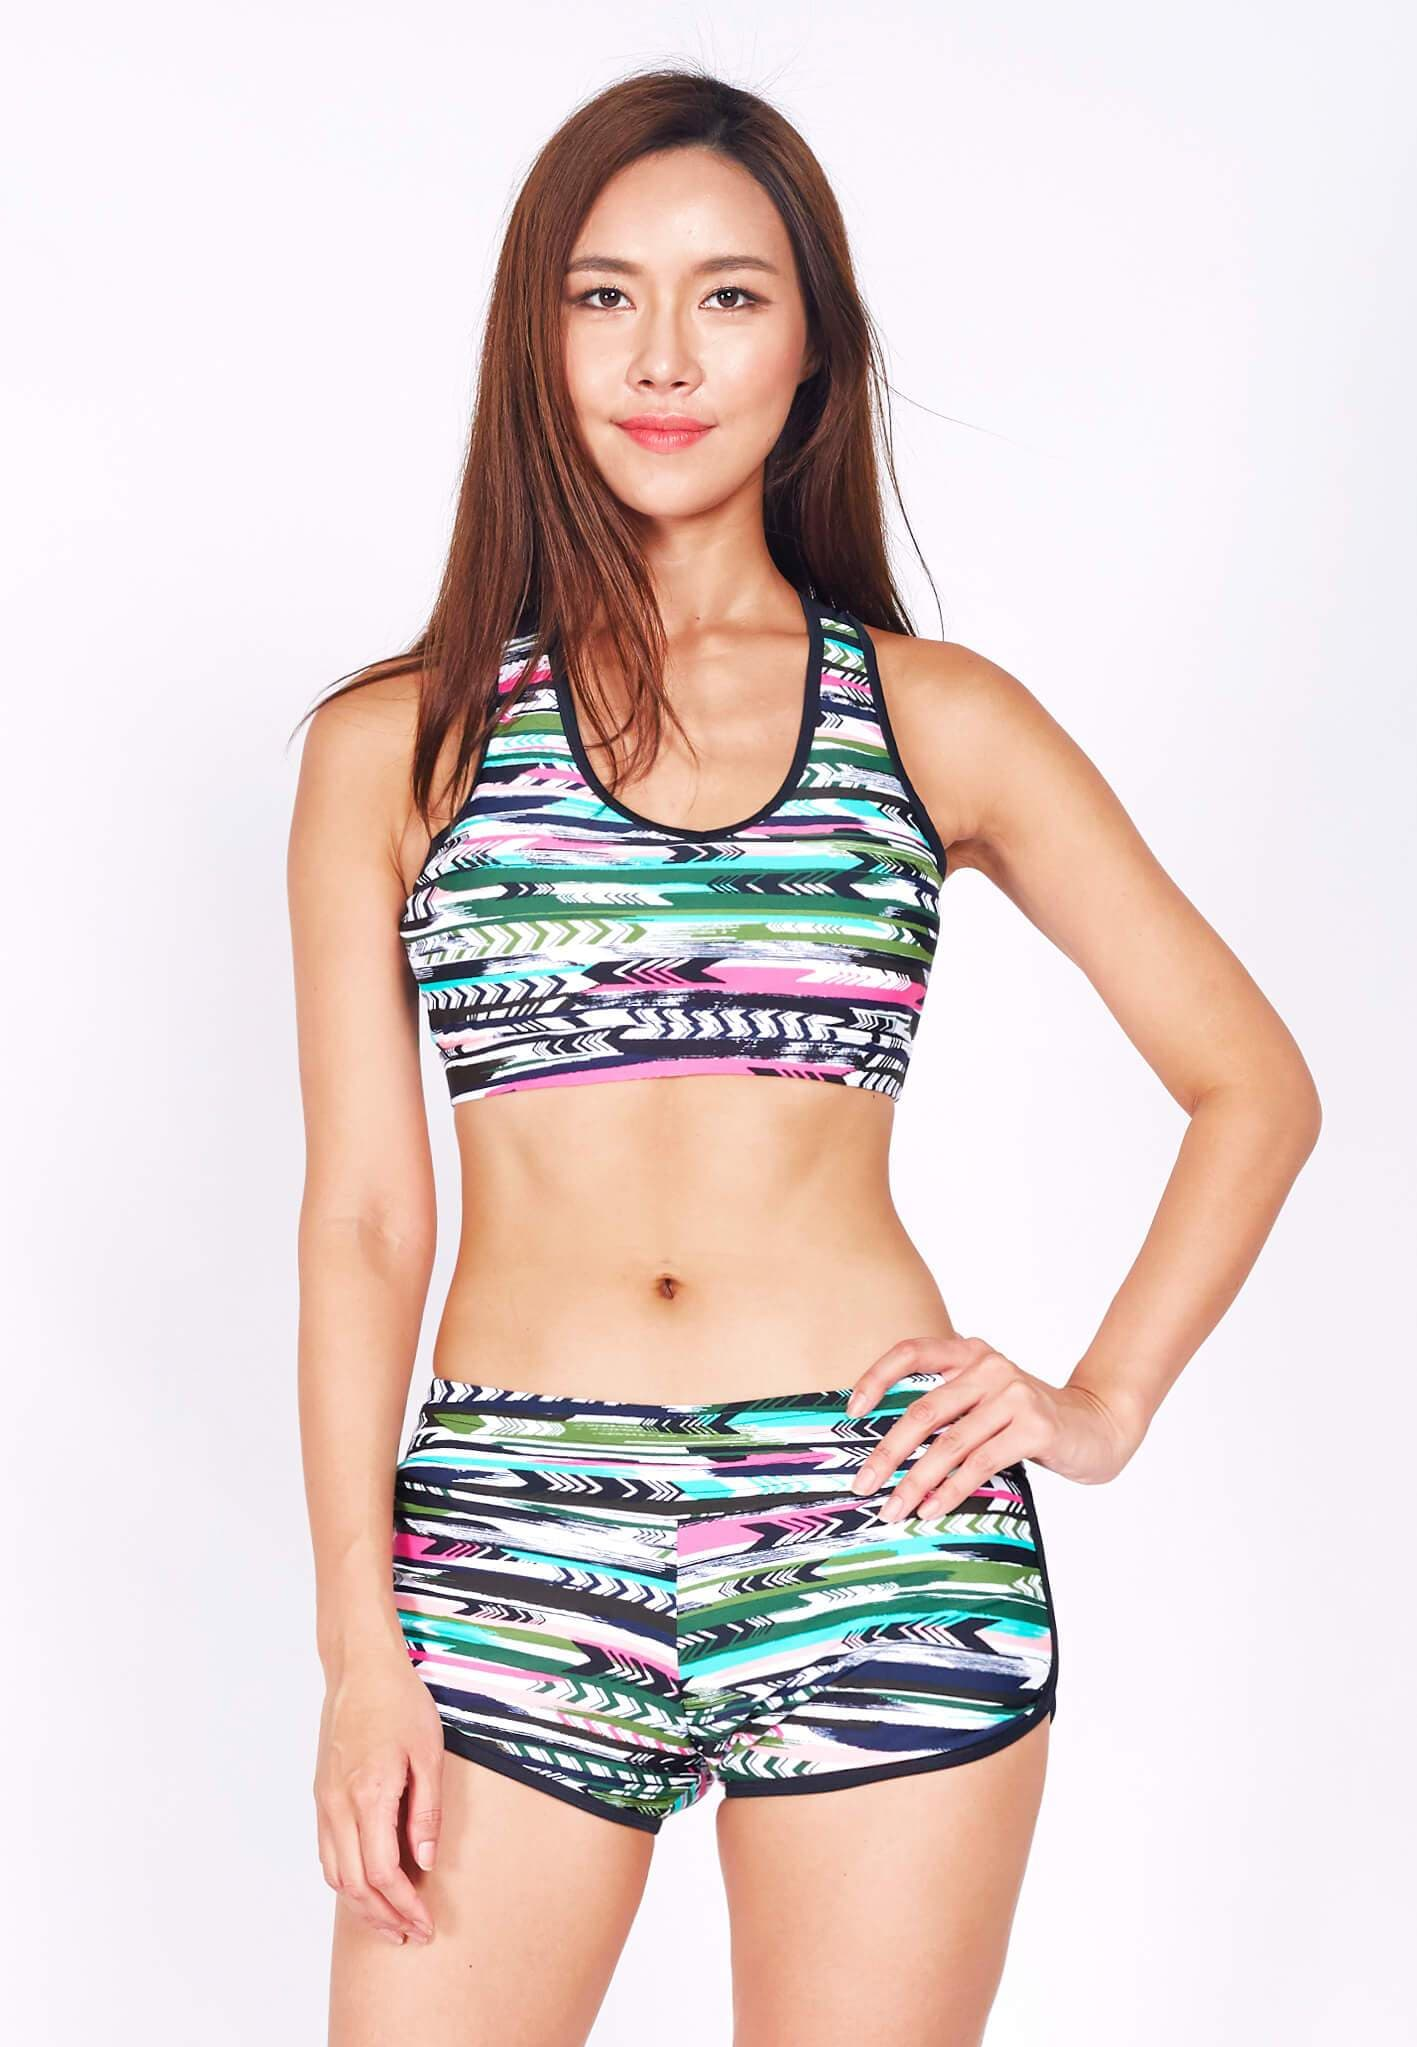 FUNFIT Swim Set: Racer Crop Top with Shorts in Arrow Print (XS - XL)